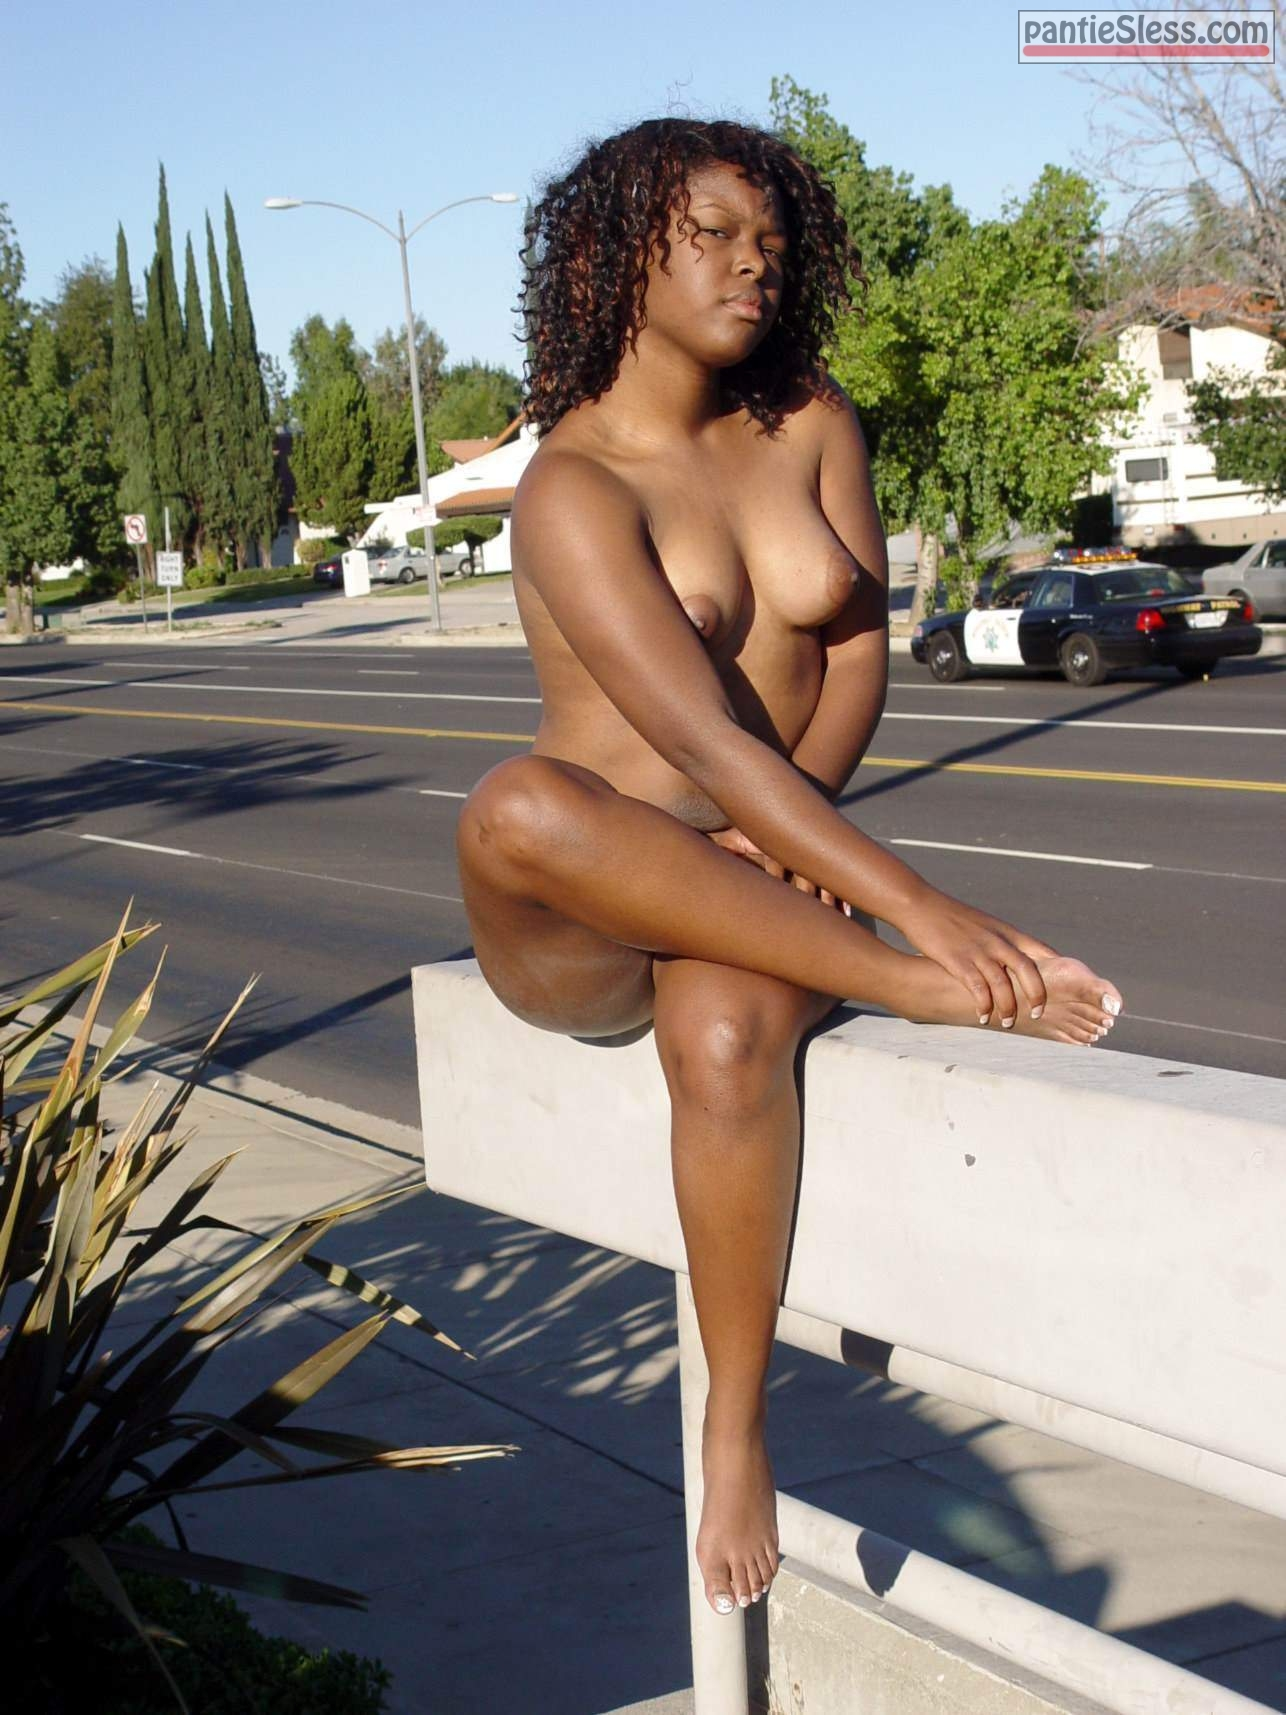 prostitute nudes ebony Totally naked black bitch posing nude next to the police car